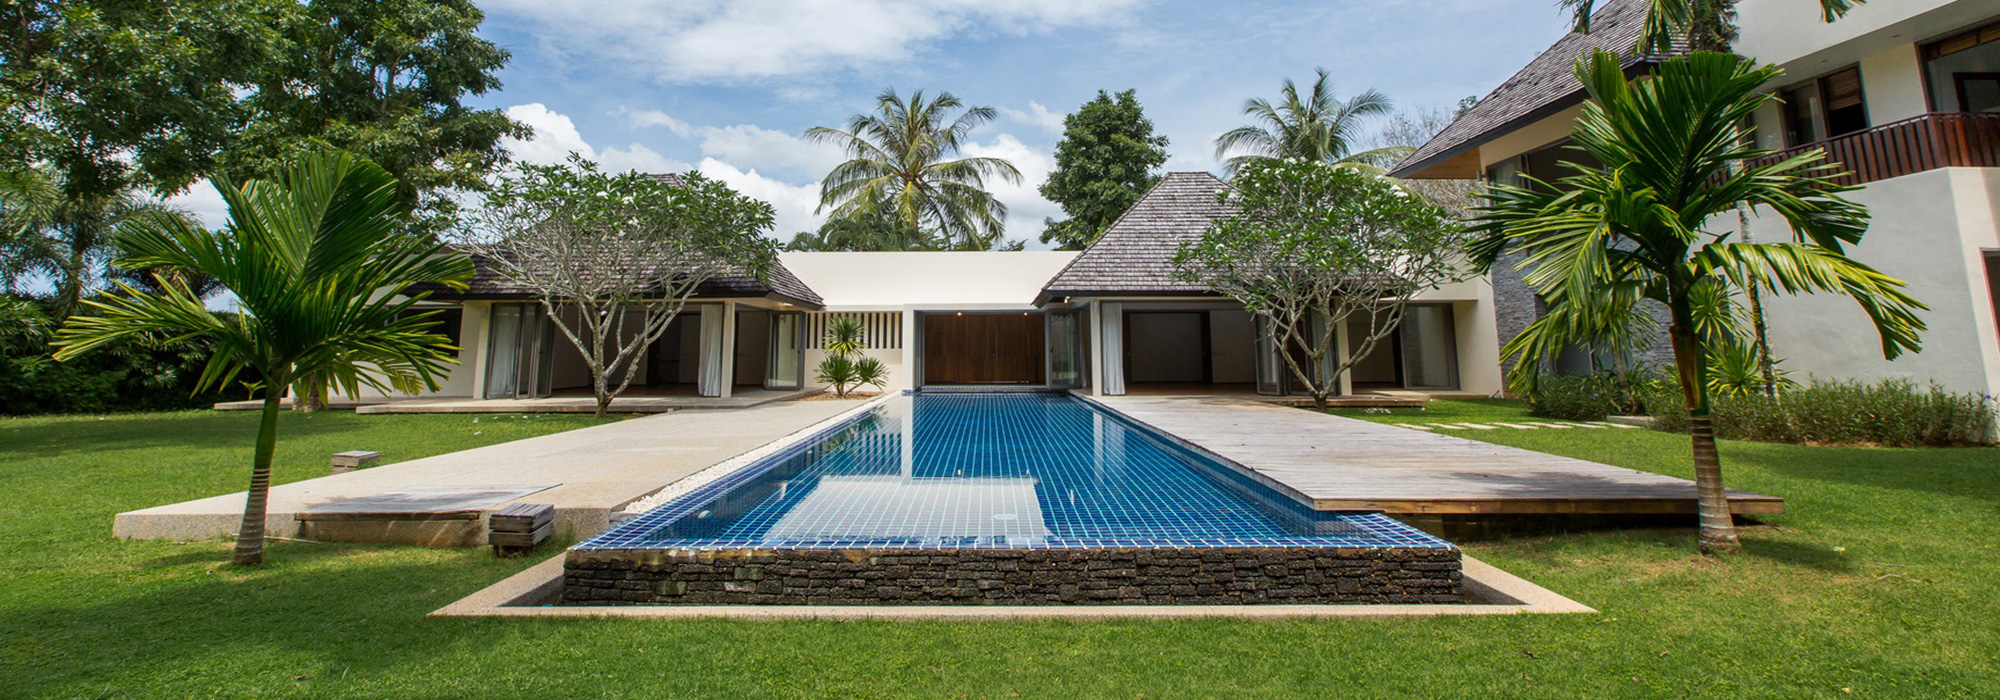 Pool Villa for Sale in Phuket. 5 bedrooms